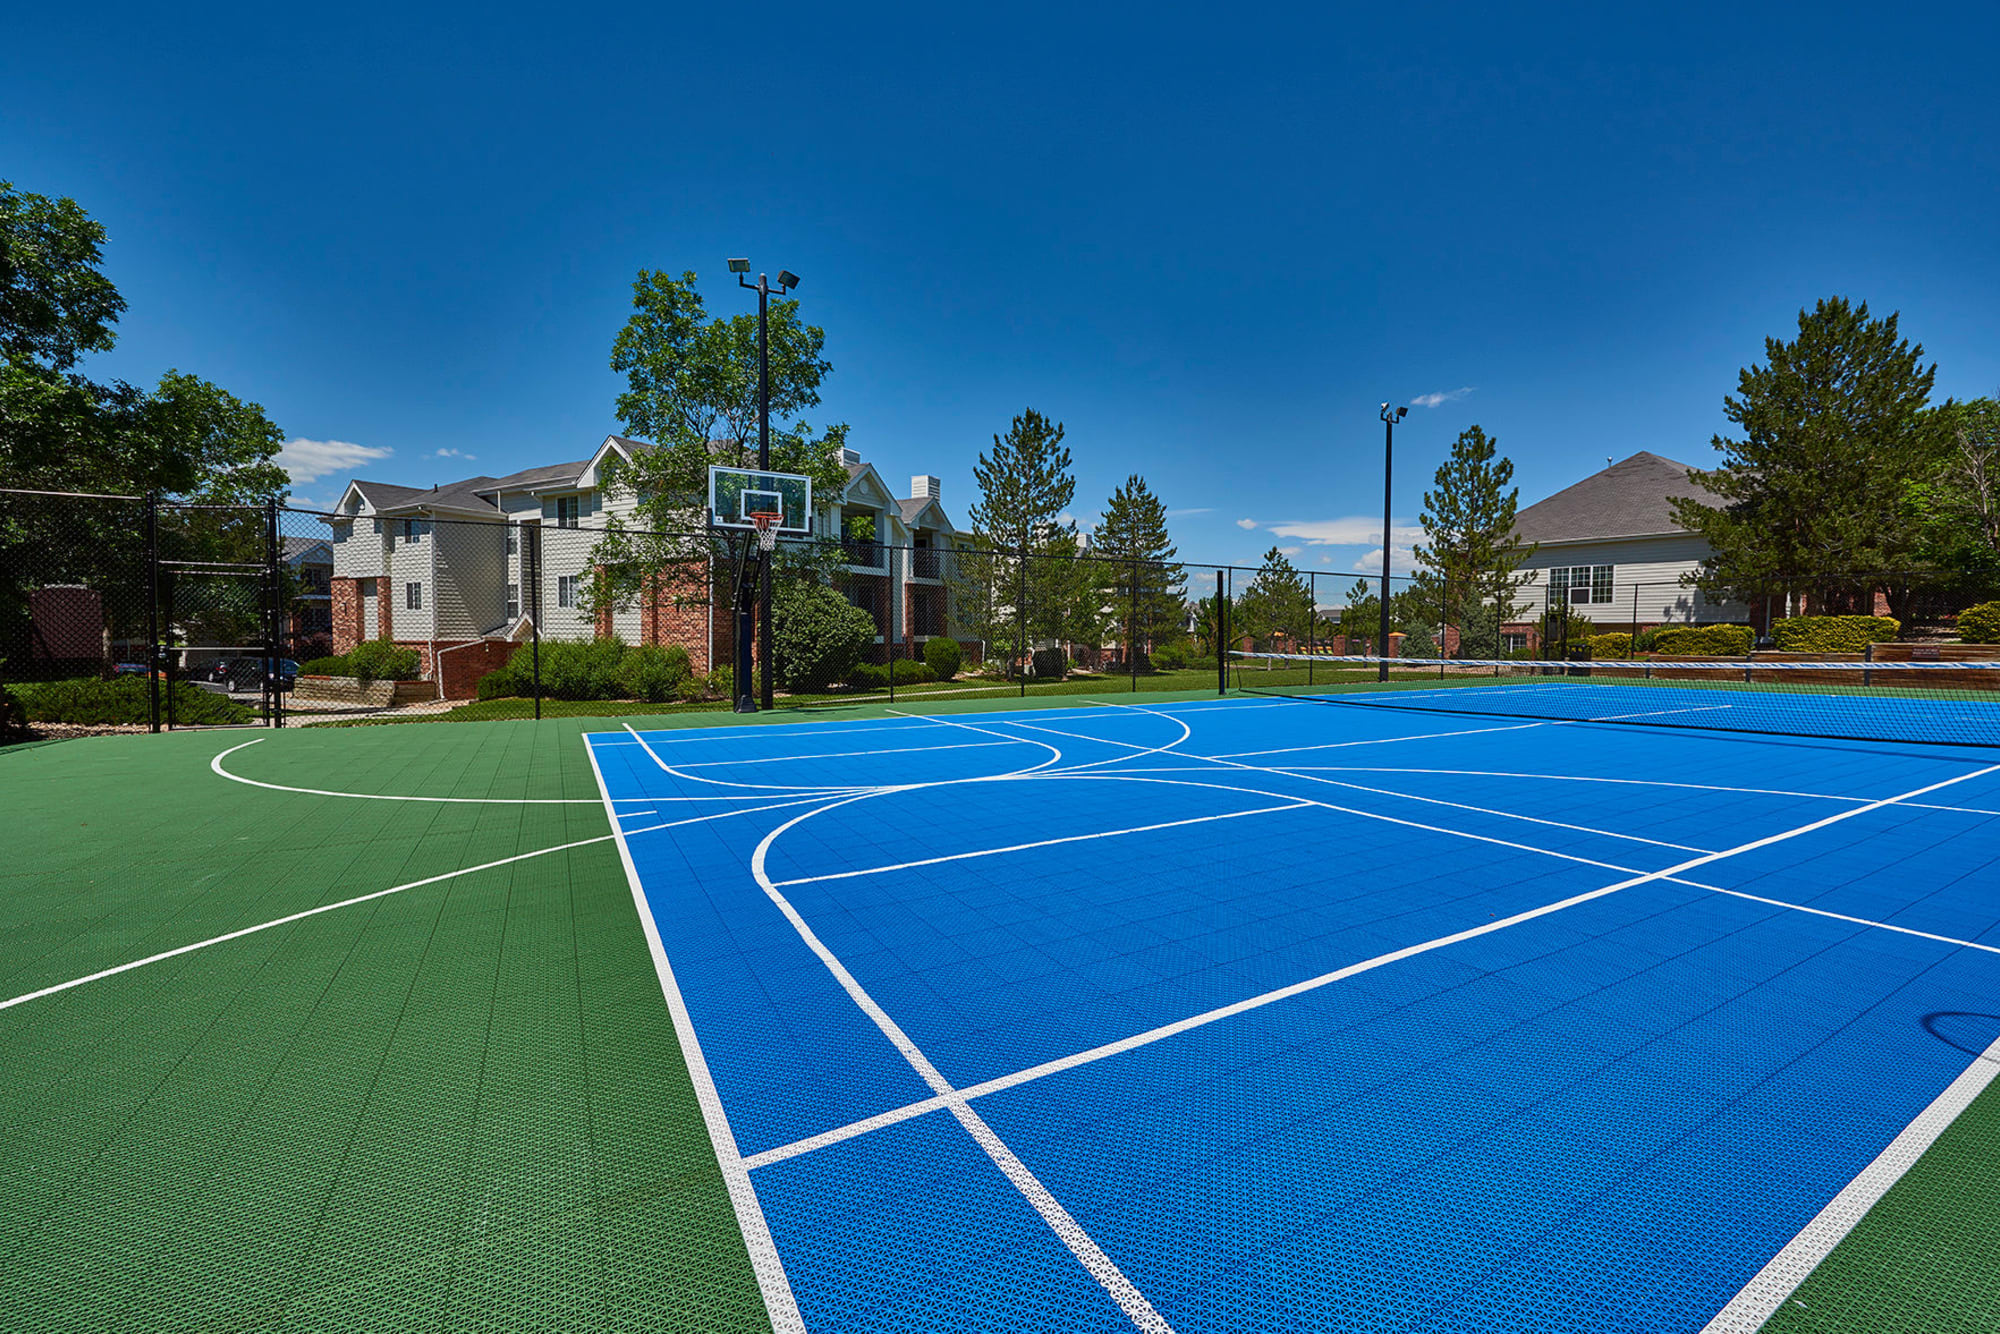 Basketball court at Villas at Homestead Apartments in Englewood, Colorado